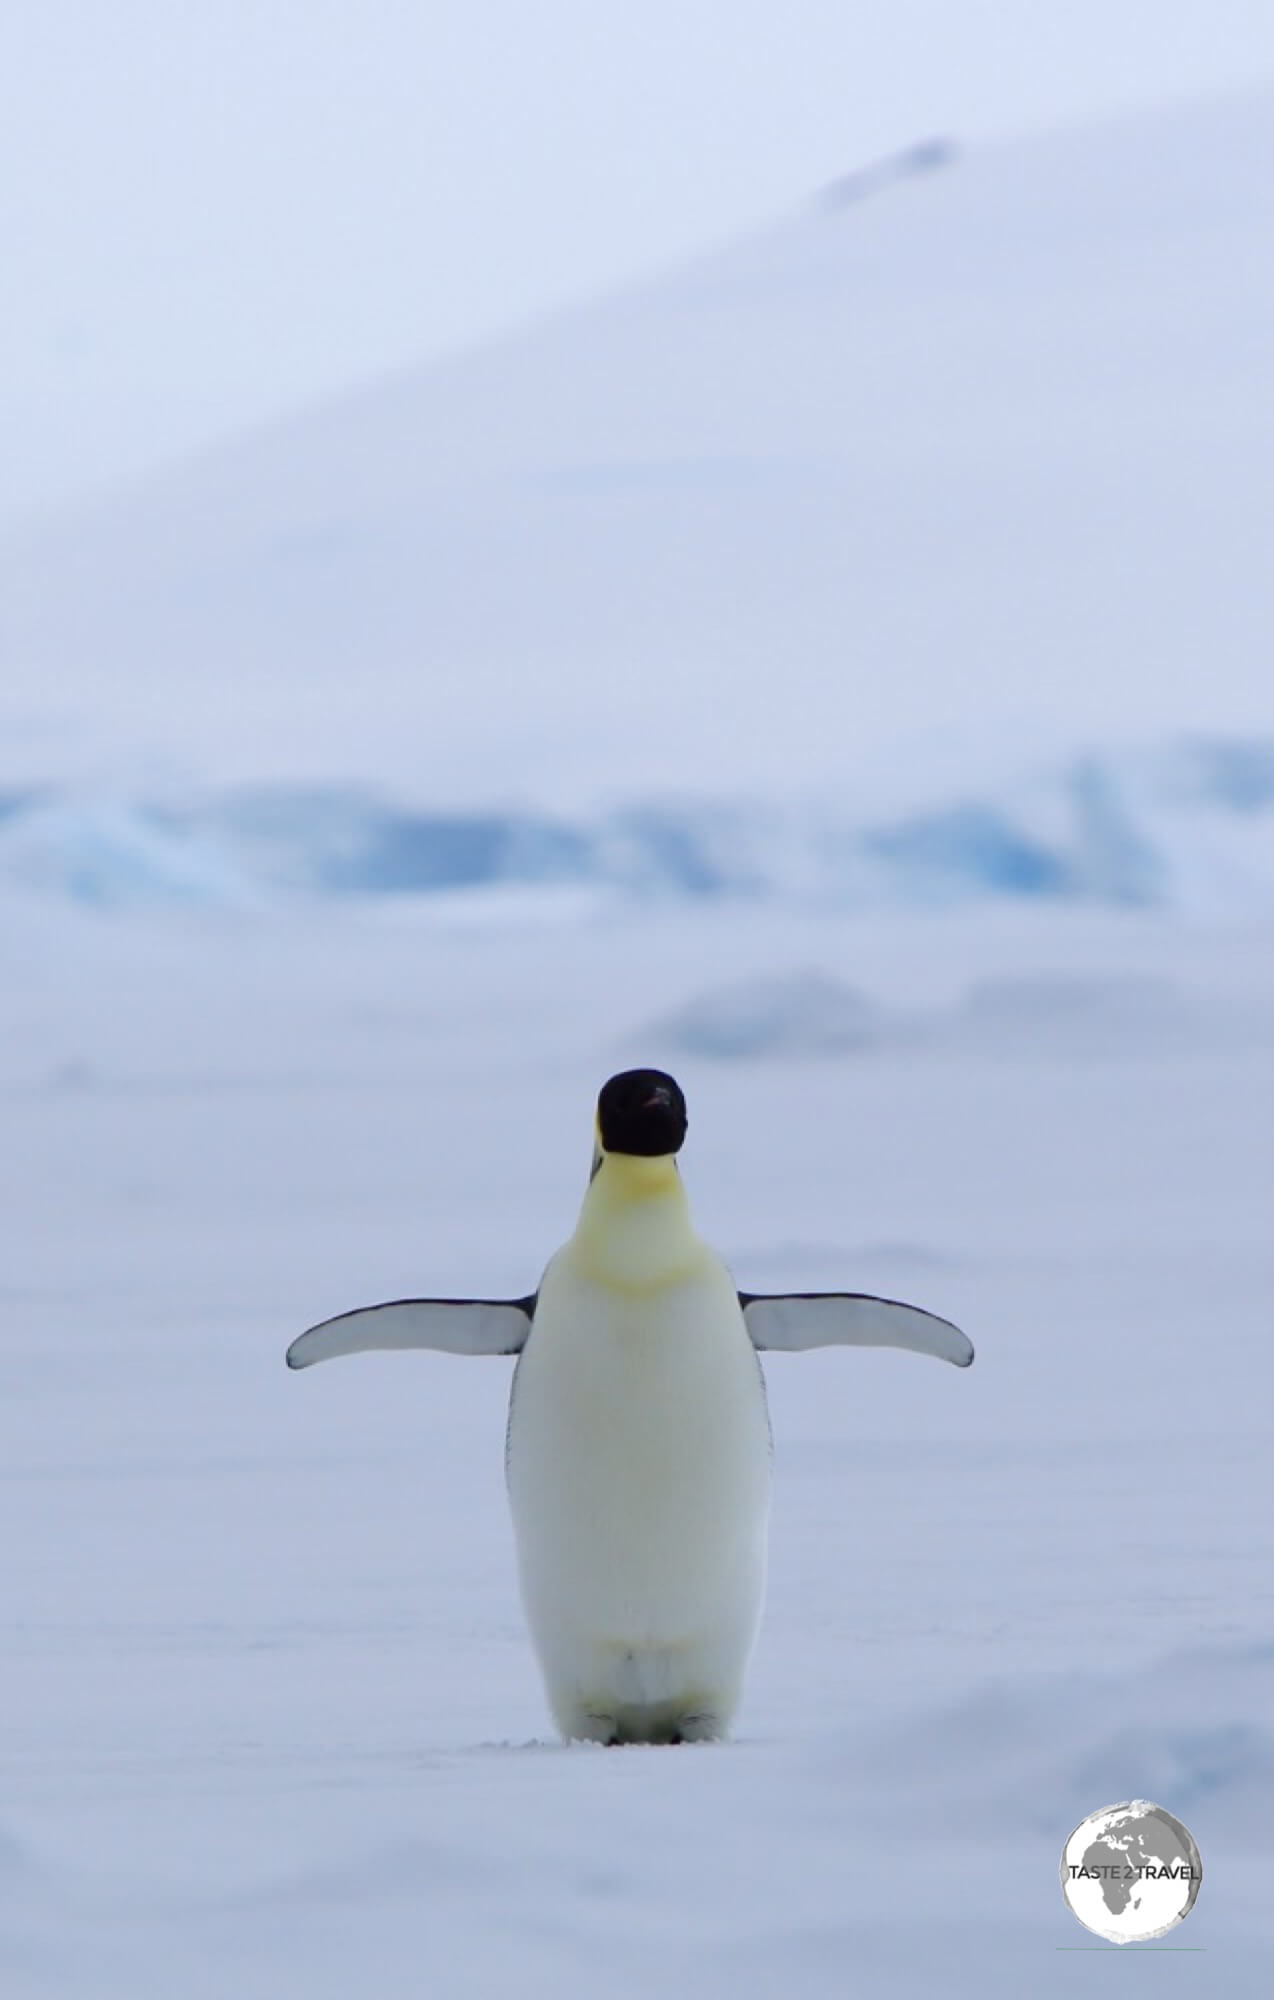 The elusive Emperor penguin is the tallest and heaviest of all penguins. This one in Crystal Sound is nearing completion of its annual Catastrophic Molt.